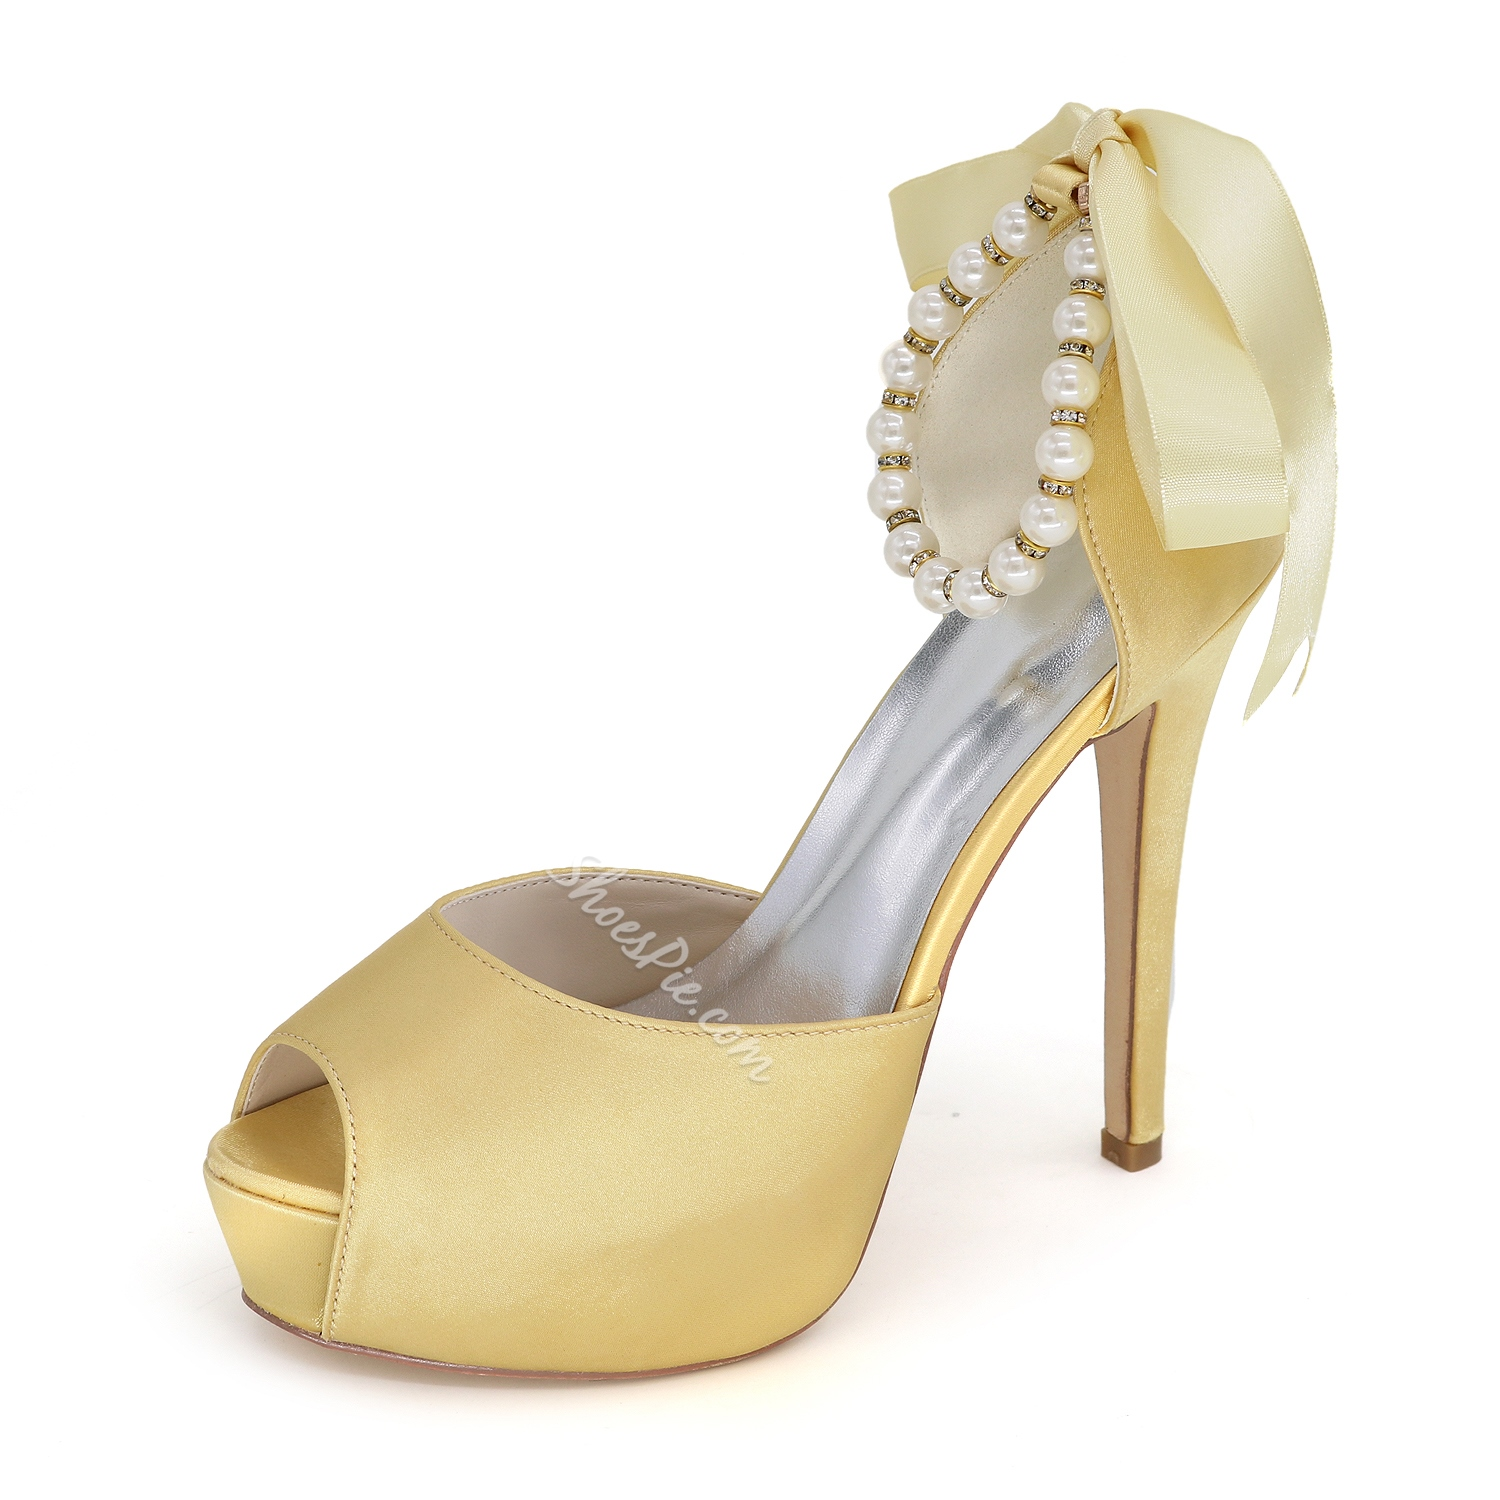 Fashionable Pearls Stiletto Heel Sandals